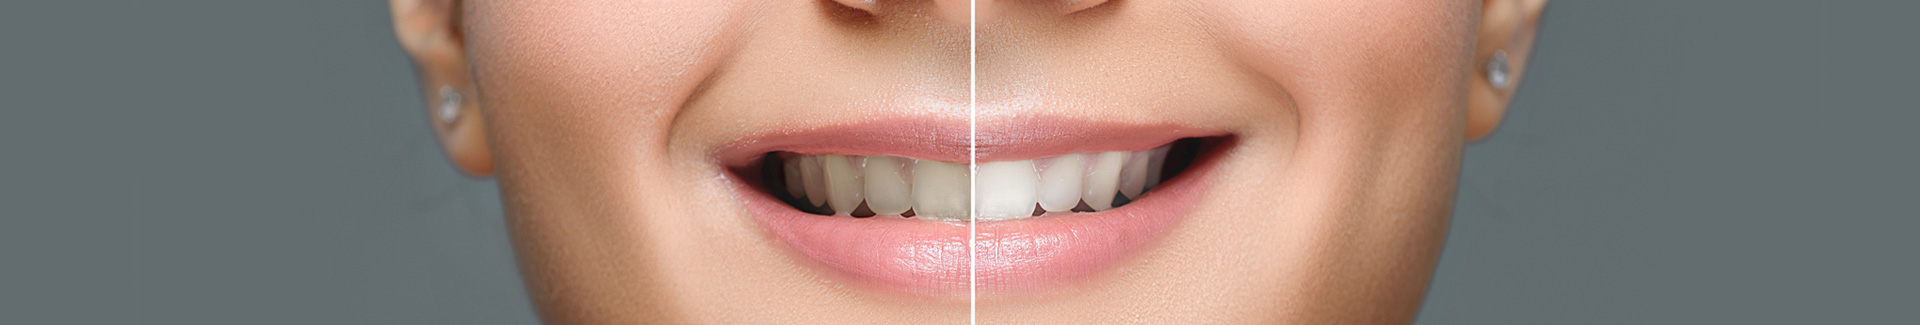 Teeth Whitening at Alpha Plus Dental Center